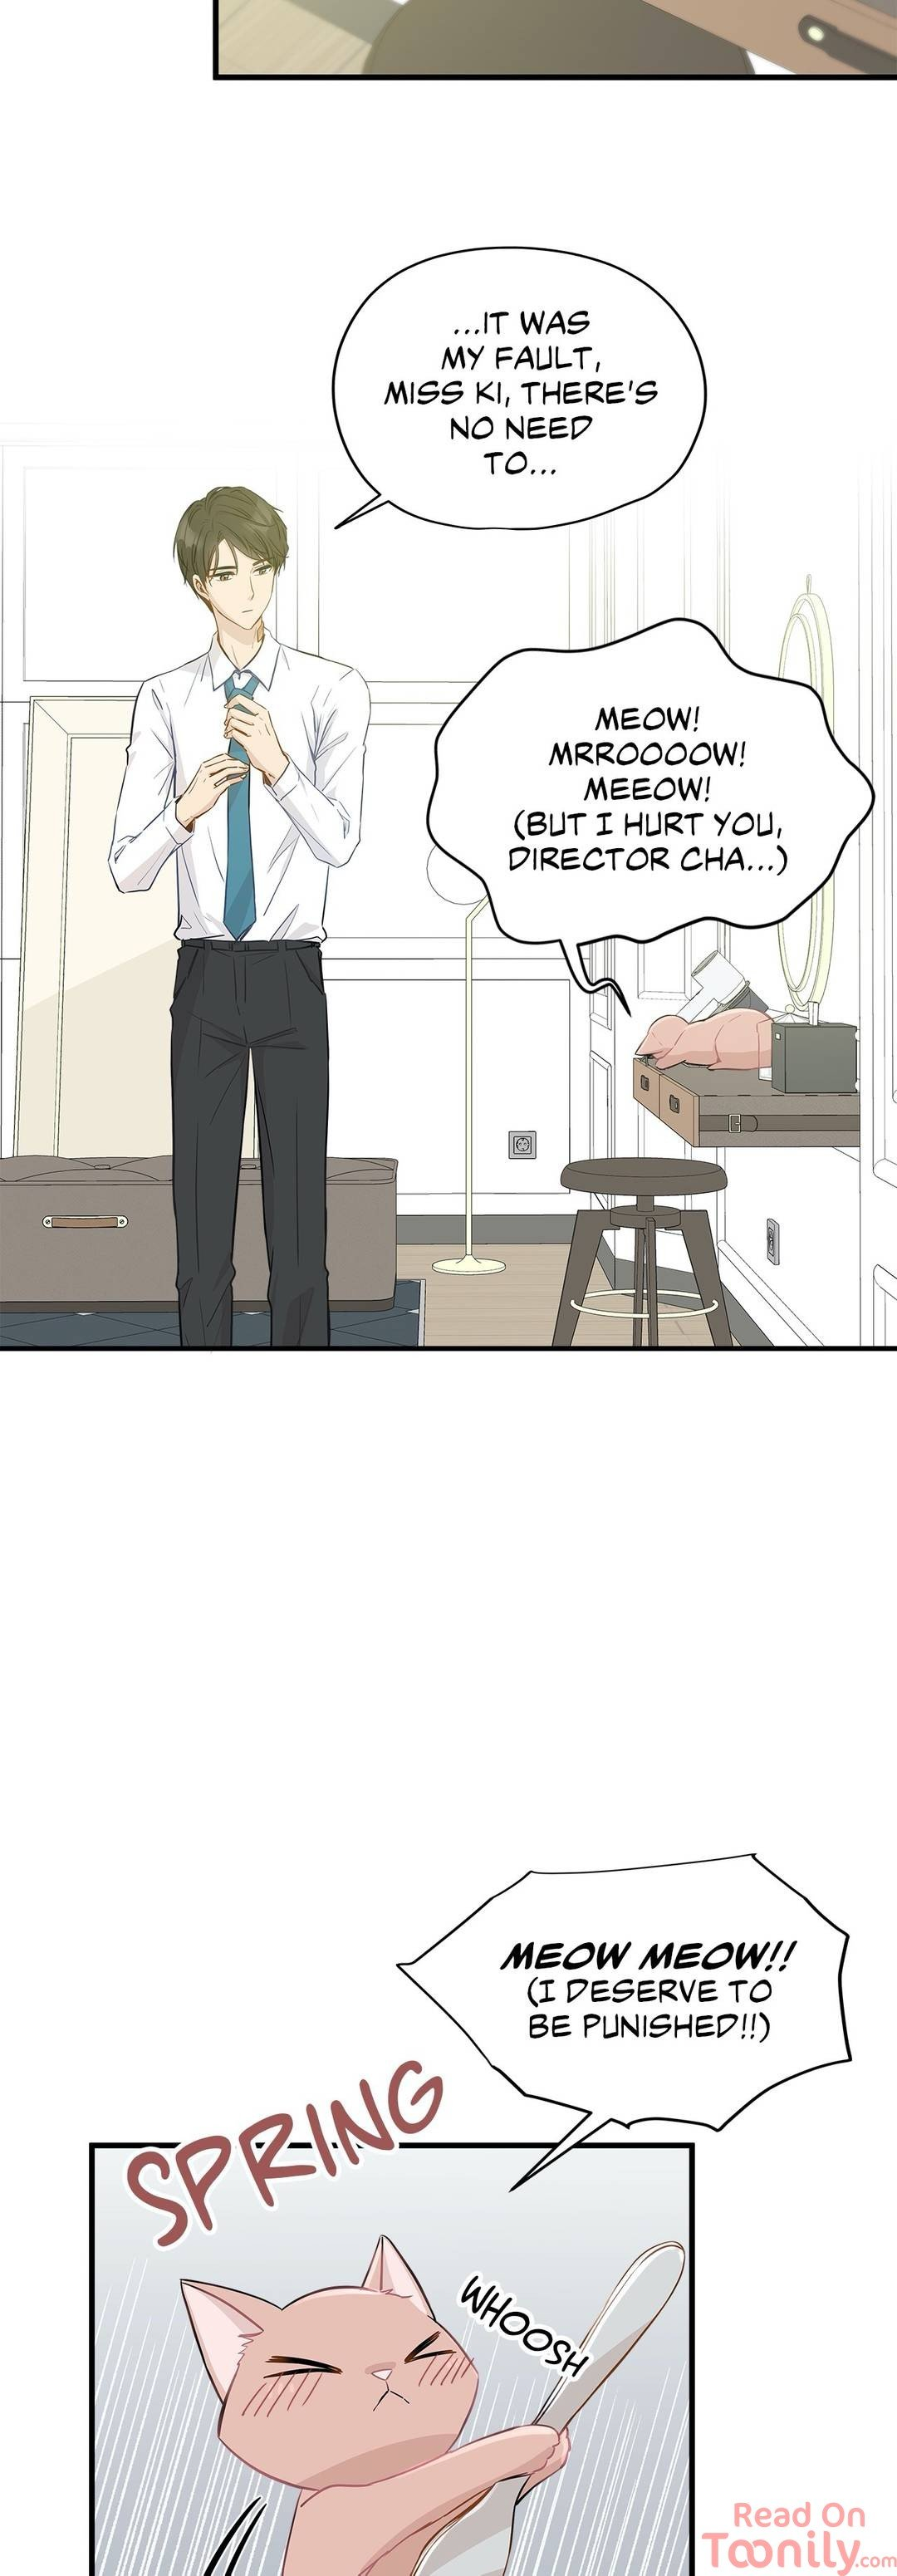 Just For A Meowment - chapter 9 - #2